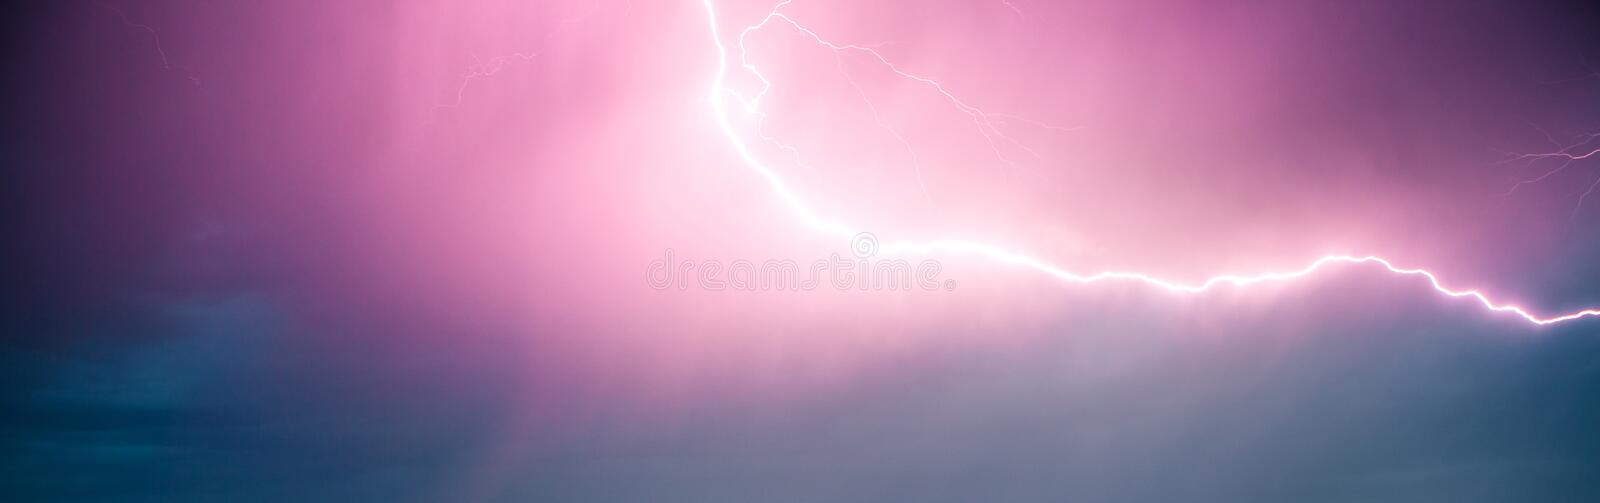 A flash of lightning in a dramatic sky. A natural phenomenon. royalty free stock photos